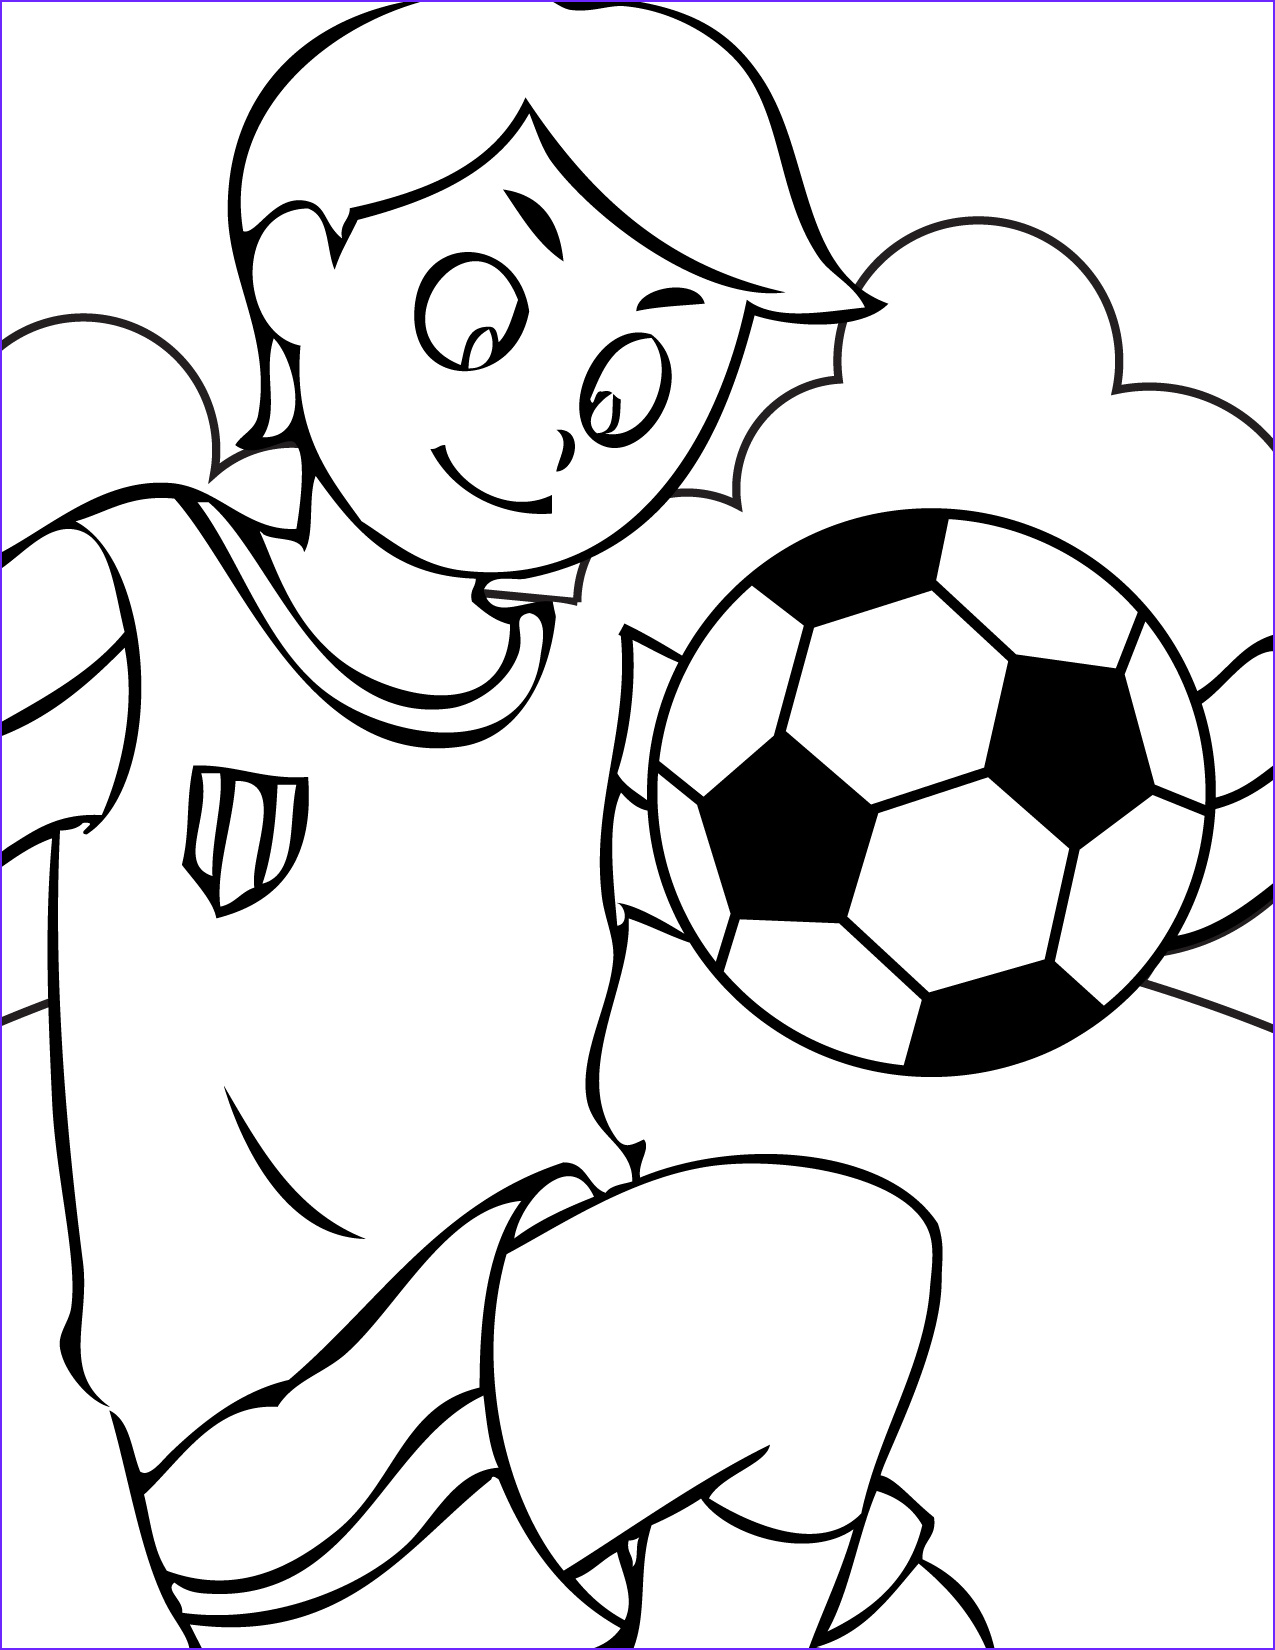 Free Printable Kids Coloring Pages Inspirational Collection Free Printable Sports Coloring Pages for Kids